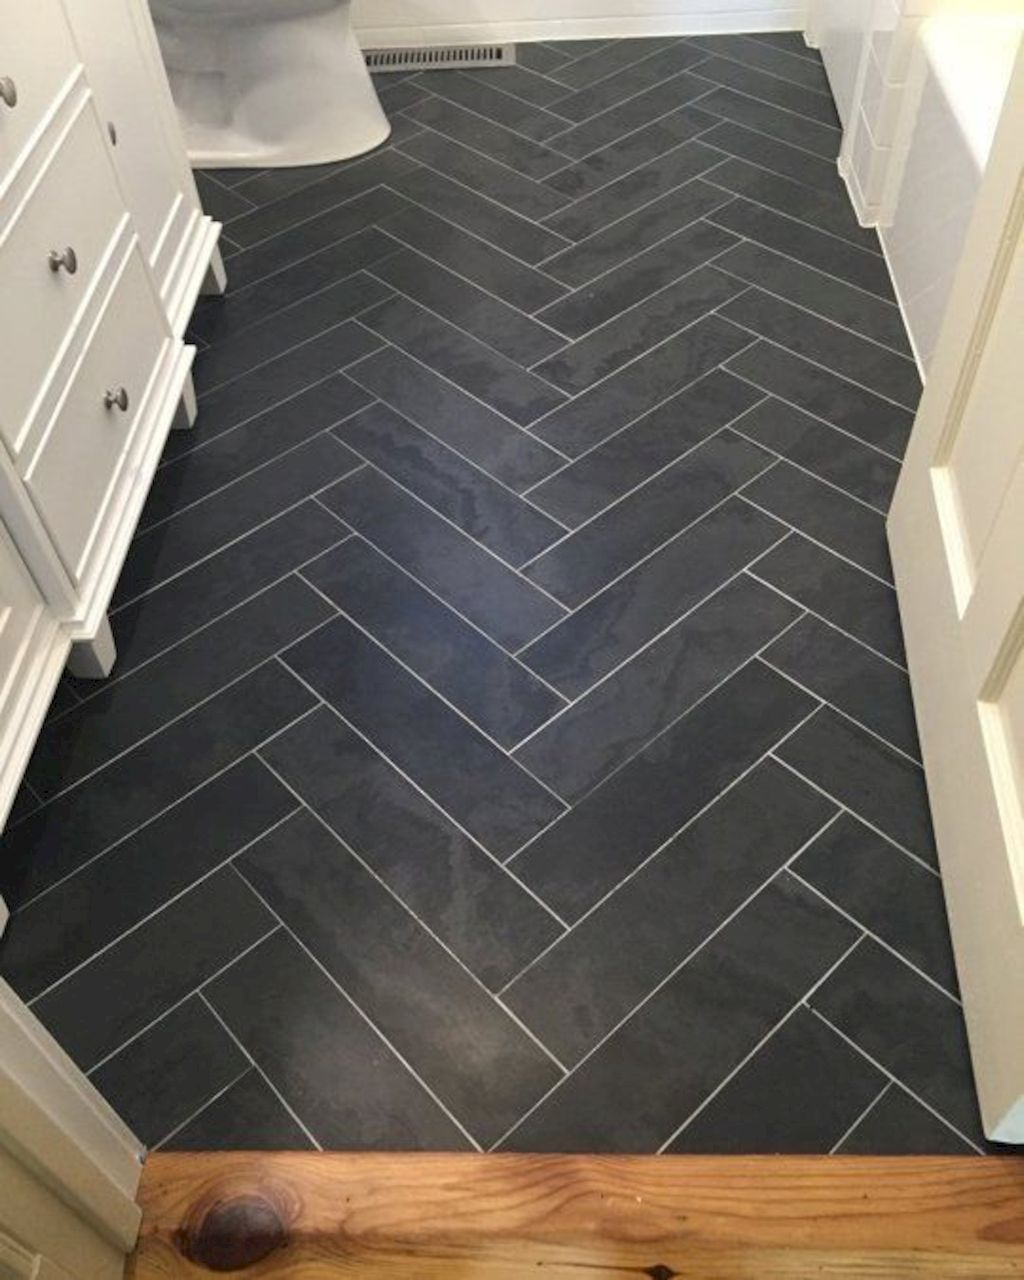 Unique bathroom floor design with artsy pattern improvement painted on tiles and amazing floor update with beautiful rug designs Image 53